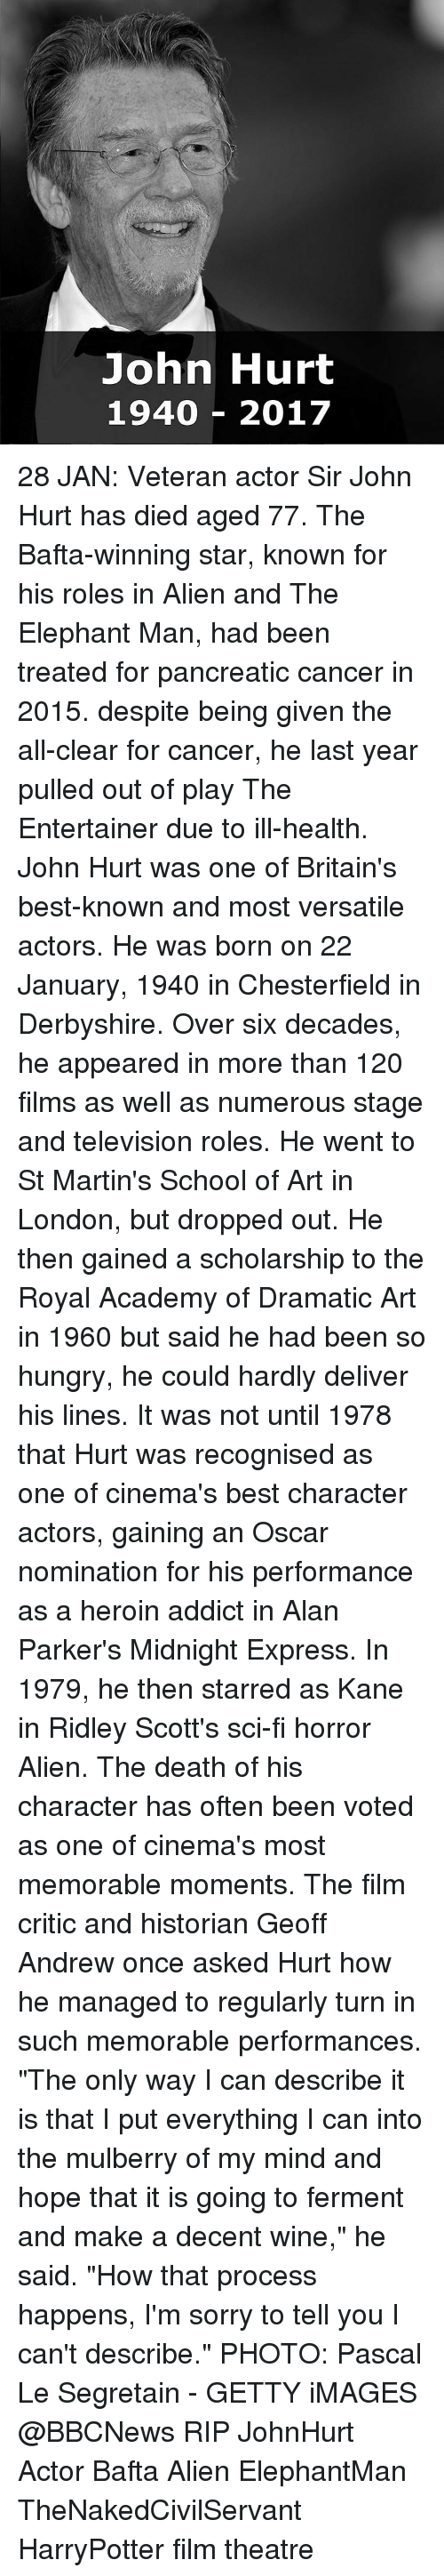 """Heroin, Memes, and Oscars: John Hurt  1940 2017 28 JAN: Veteran actor Sir John Hurt has died aged 77. The Bafta-winning star, known for his roles in Alien and The Elephant Man, had been treated for pancreatic cancer in 2015. despite being given the all-clear for cancer, he last year pulled out of play The Entertainer due to ill-health. John Hurt was one of Britain's best-known and most versatile actors. He was born on 22 January, 1940 in Chesterfield in Derbyshire. Over six decades, he appeared in more than 120 films as well as numerous stage and television roles. He went to St Martin's School of Art in London, but dropped out. He then gained a scholarship to the Royal Academy of Dramatic Art in 1960 but said he had been so hungry, he could hardly deliver his lines. It was not until 1978 that Hurt was recognised as one of cinema's best character actors, gaining an Oscar nomination for his performance as a heroin addict in Alan Parker's Midnight Express. In 1979, he then starred as Kane in Ridley Scott's sci-fi horror Alien. The death of his character has often been voted as one of cinema's most memorable moments. The film critic and historian Geoff Andrew once asked Hurt how he managed to regularly turn in such memorable performances. """"The only way I can describe it is that I put everything I can into the mulberry of my mind and hope that it is going to ferment and make a decent wine,"""" he said. """"How that process happens, I'm sorry to tell you I can't describe."""" PHOTO: Pascal Le Segretain - GETTY iMAGES @BBCNews RIP JohnHurt Actor Bafta Alien ElephantMan TheNakedCivilServant HarryPotter film theatre"""